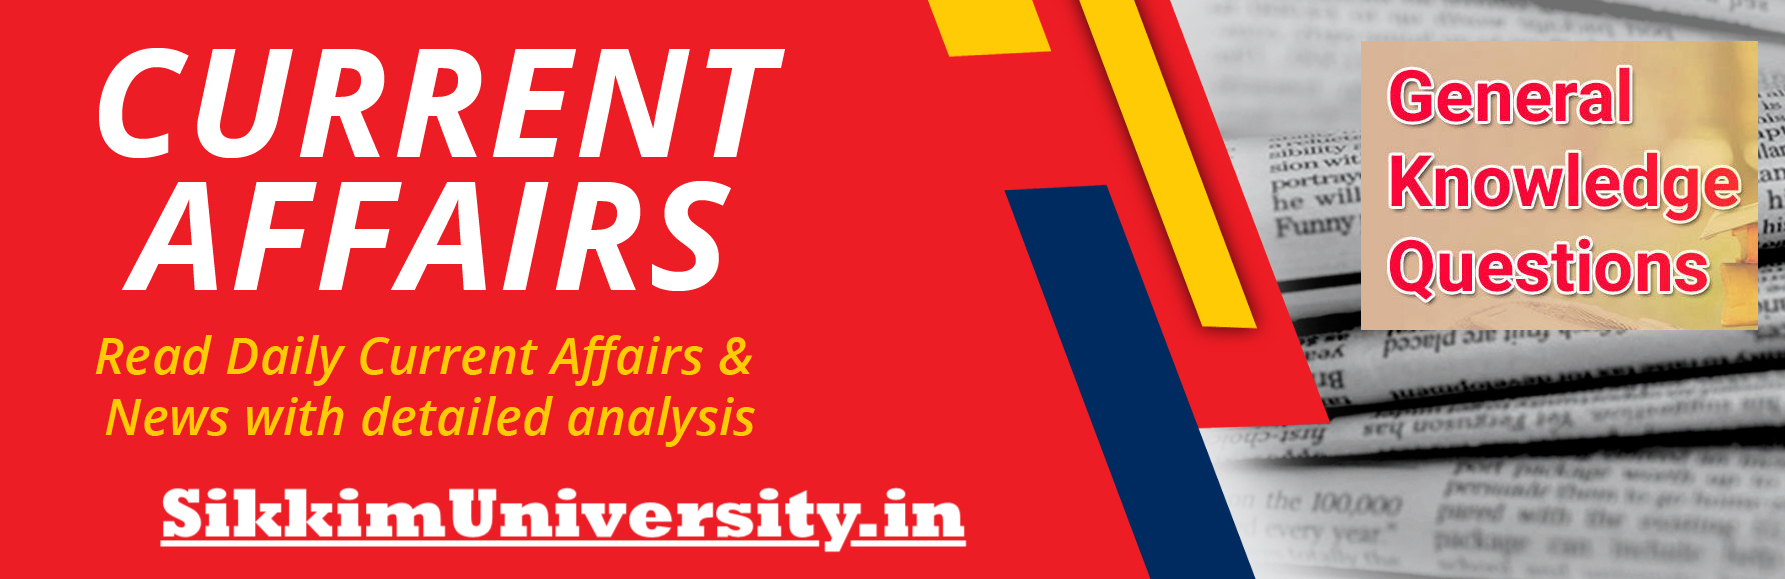 Daily-Current-Affairs-2018-2019